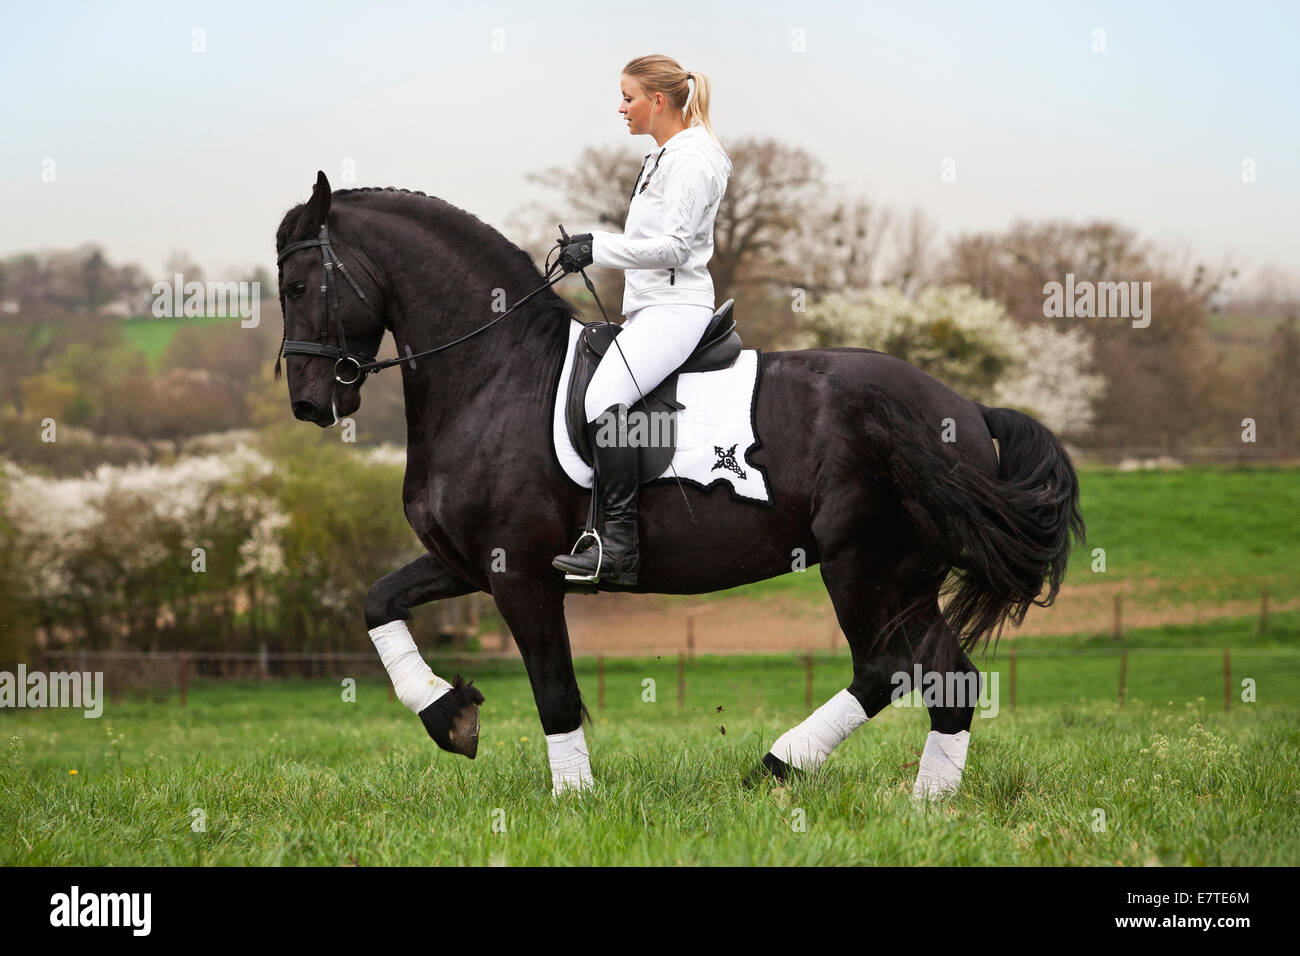 Friesian or Frisian horse, stallion with a female rider on horseback, on a meadow, classical dressage, piaffe on Stock Photo